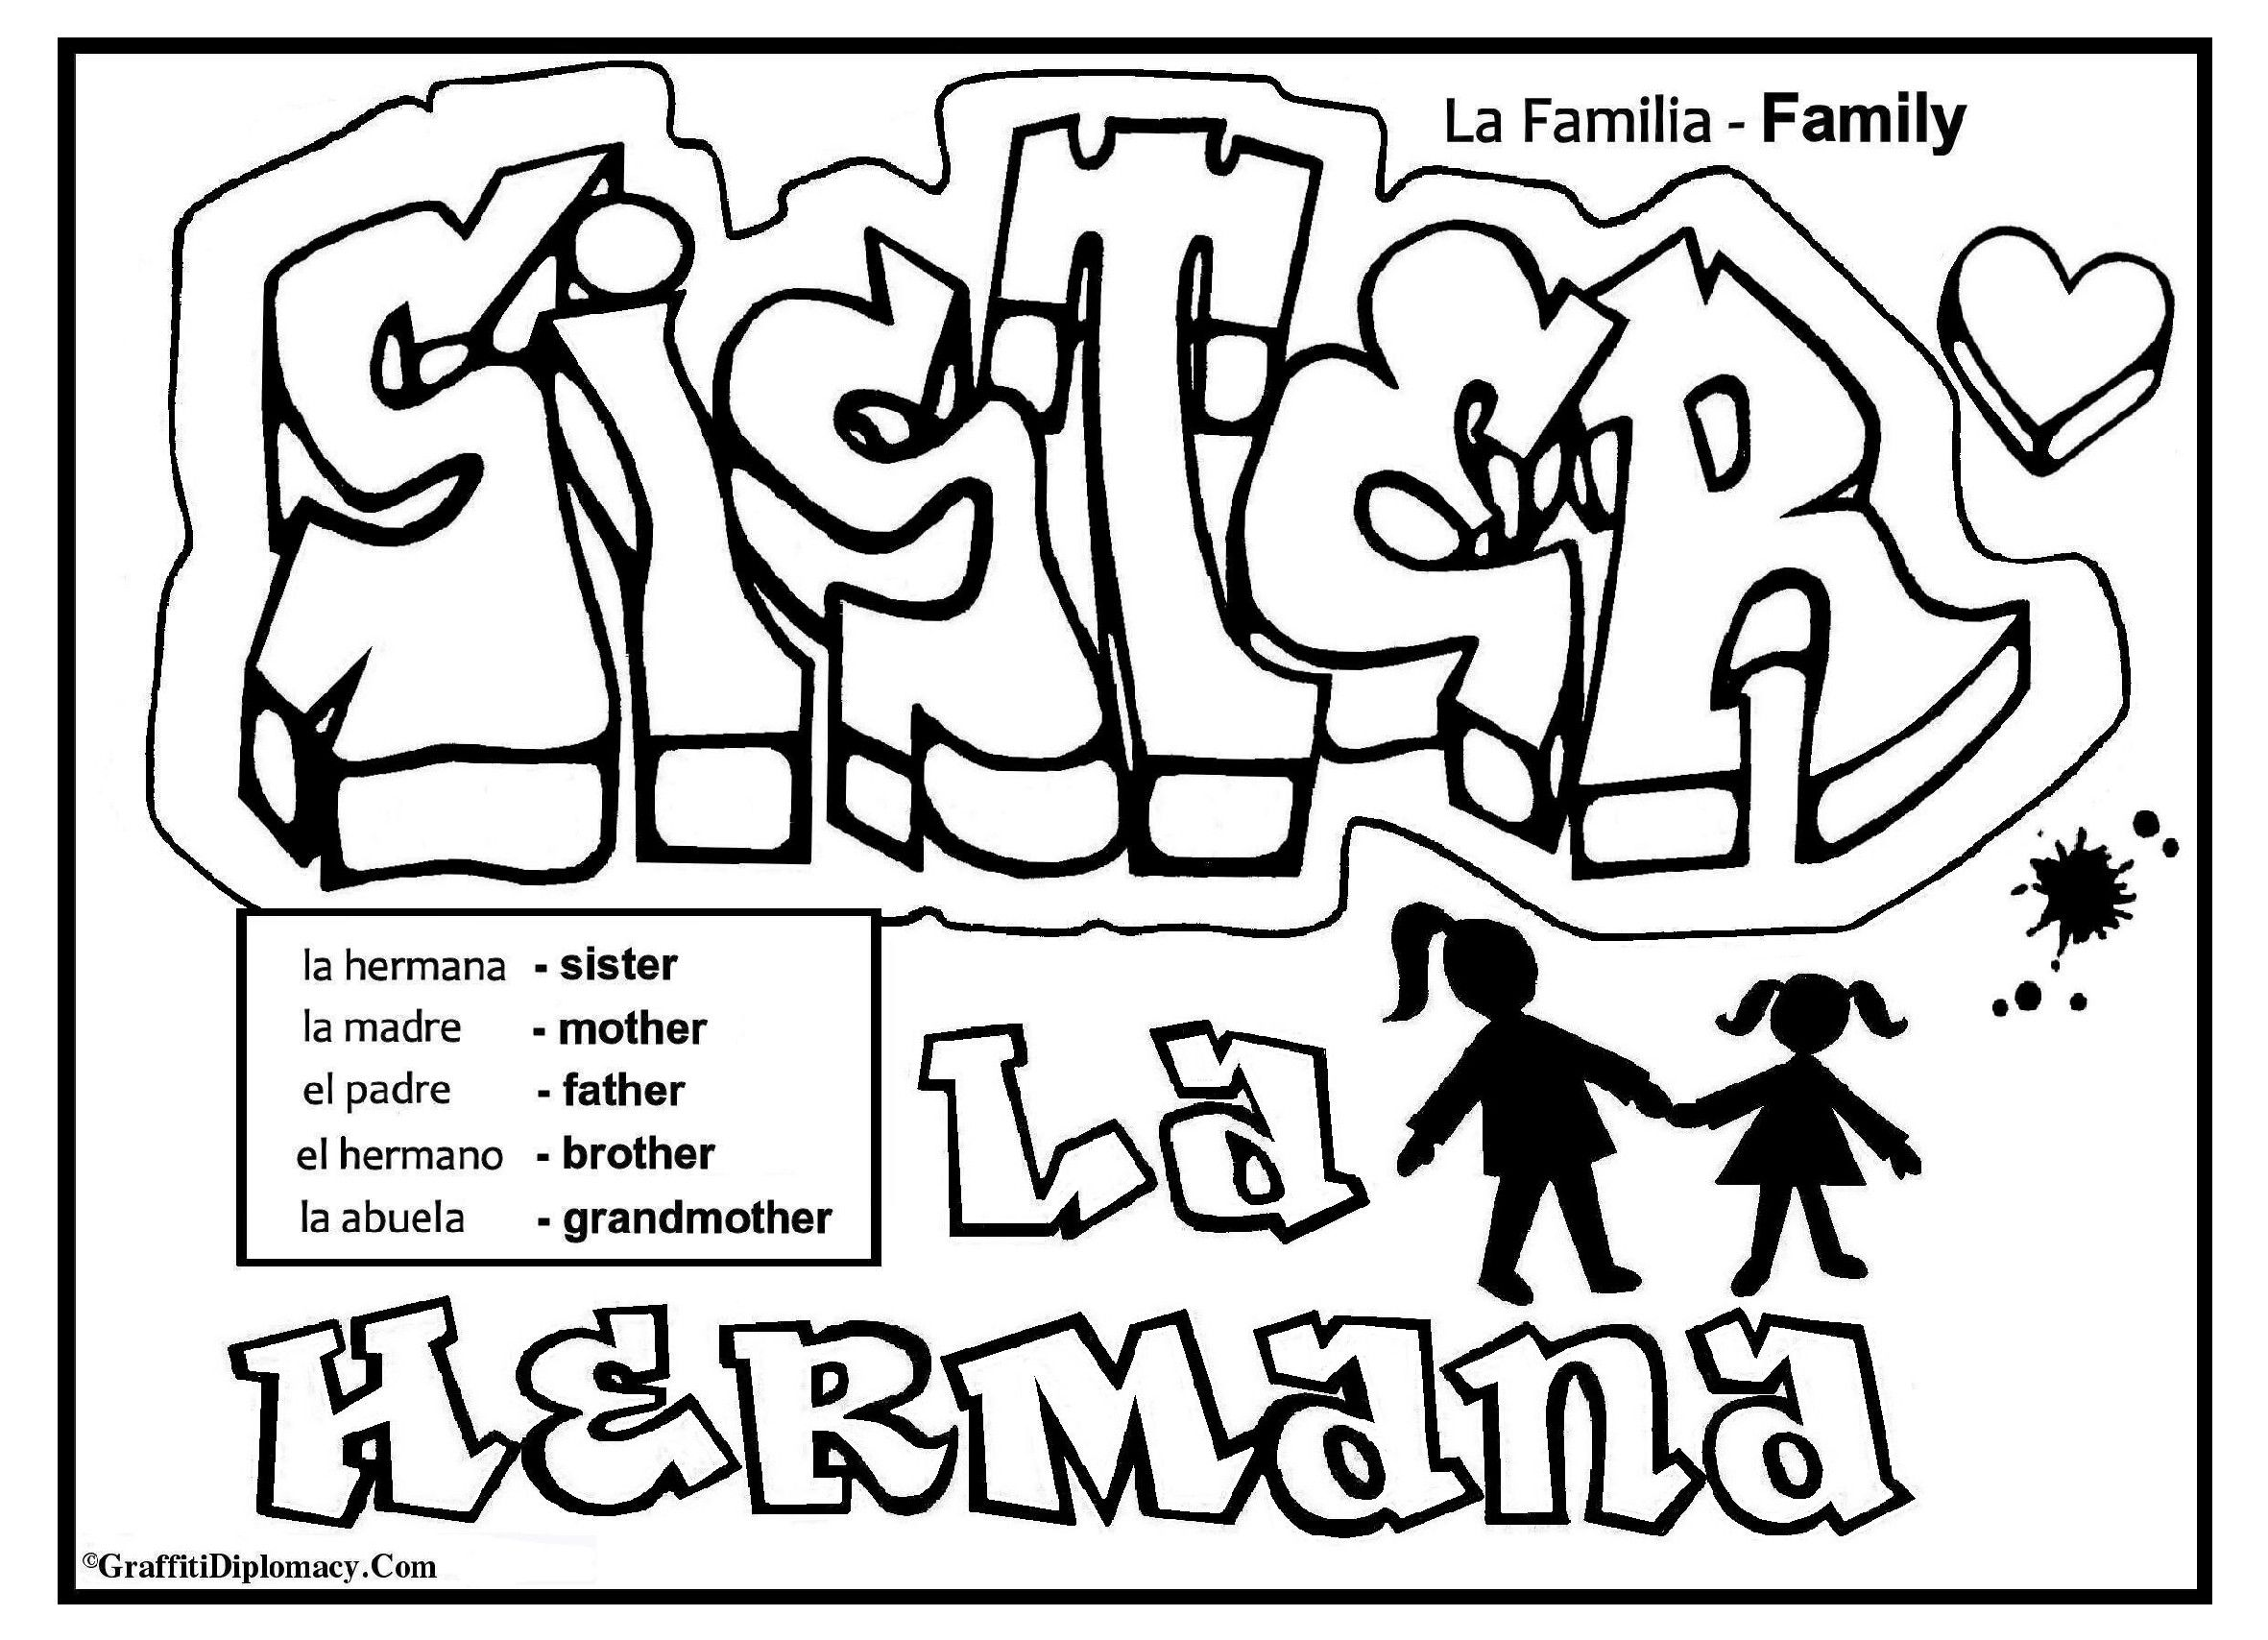 English Spanish free printable graffiti coloring page, Family - La ...